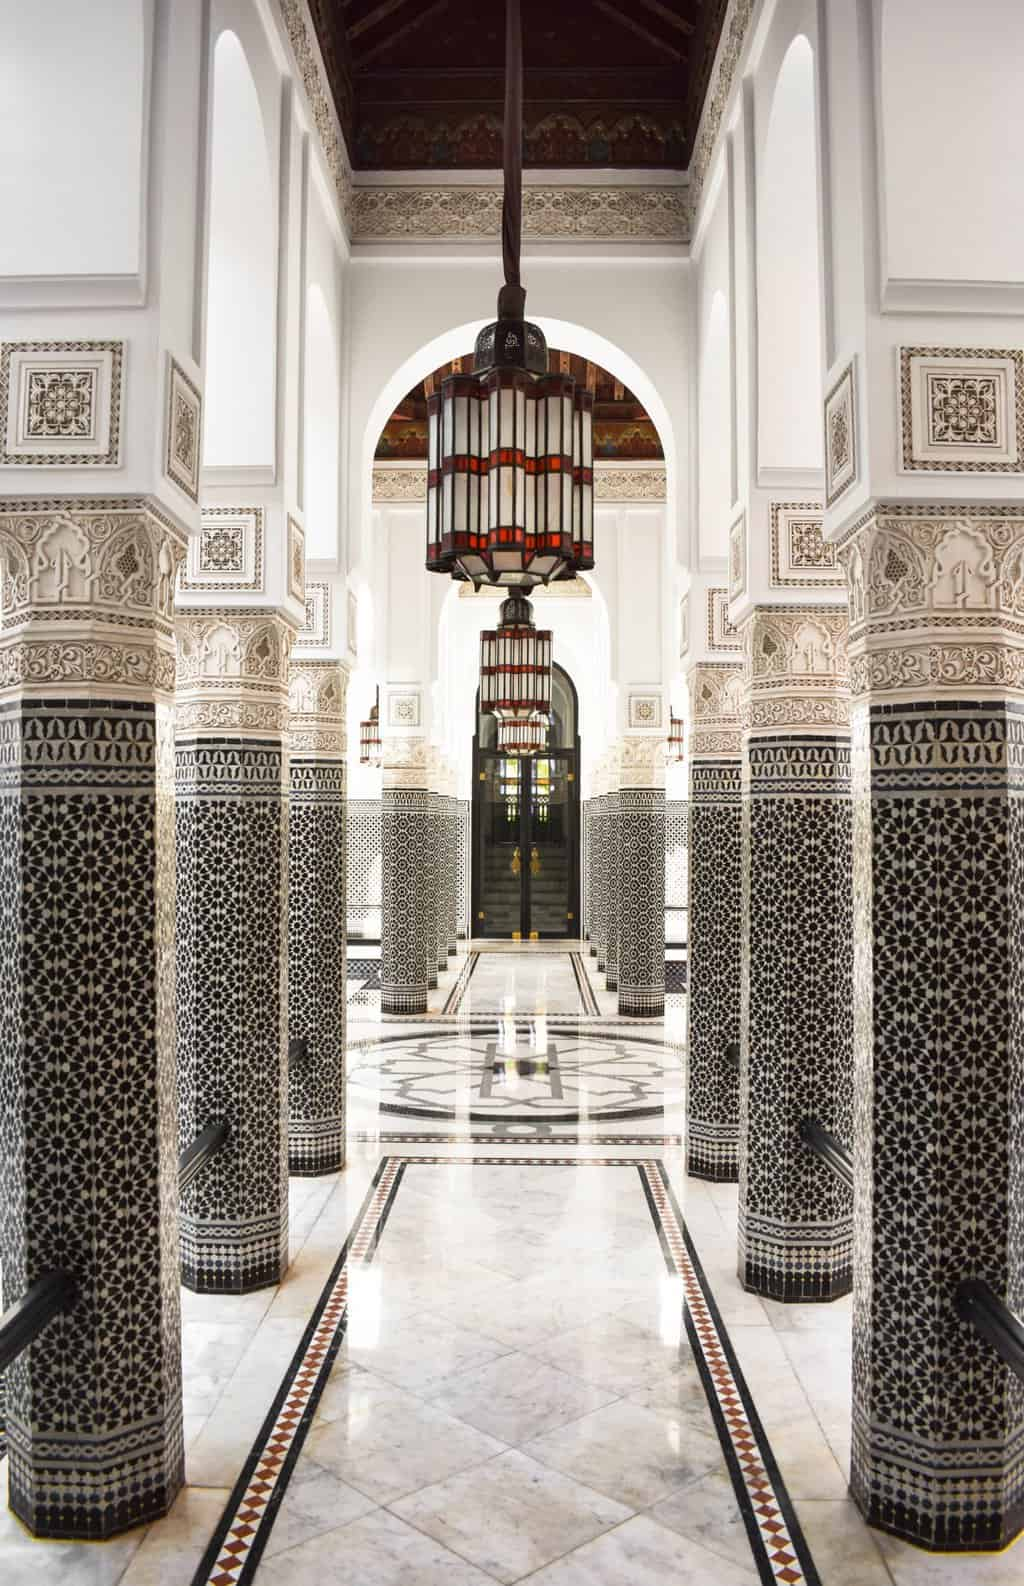 The spa entrance at La Mamounia